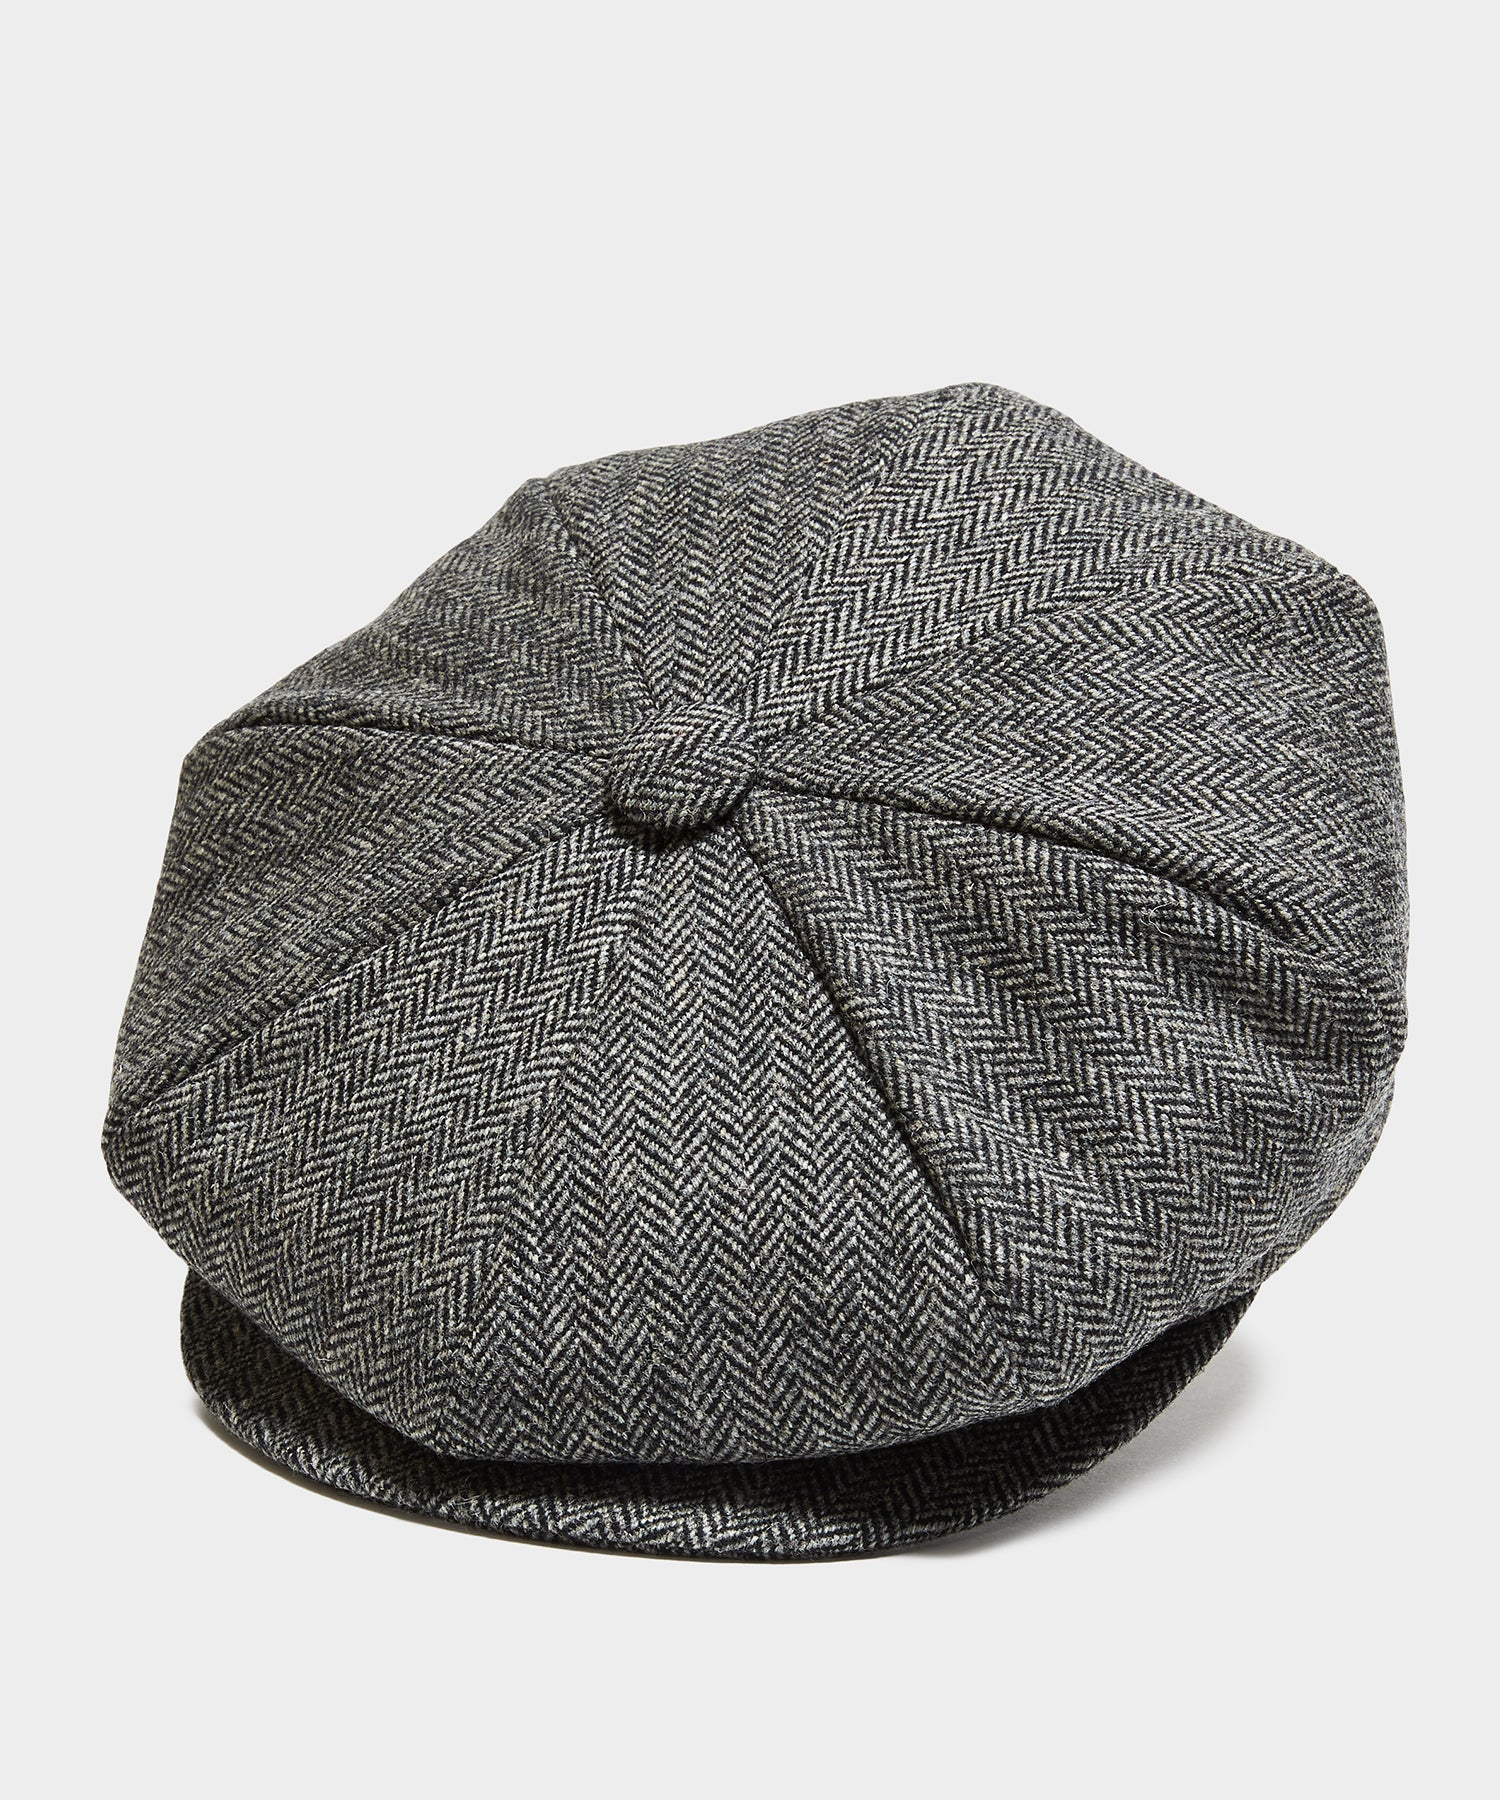 Lock & Co Muirfiled Cap in Charcoal Moon Herringbone